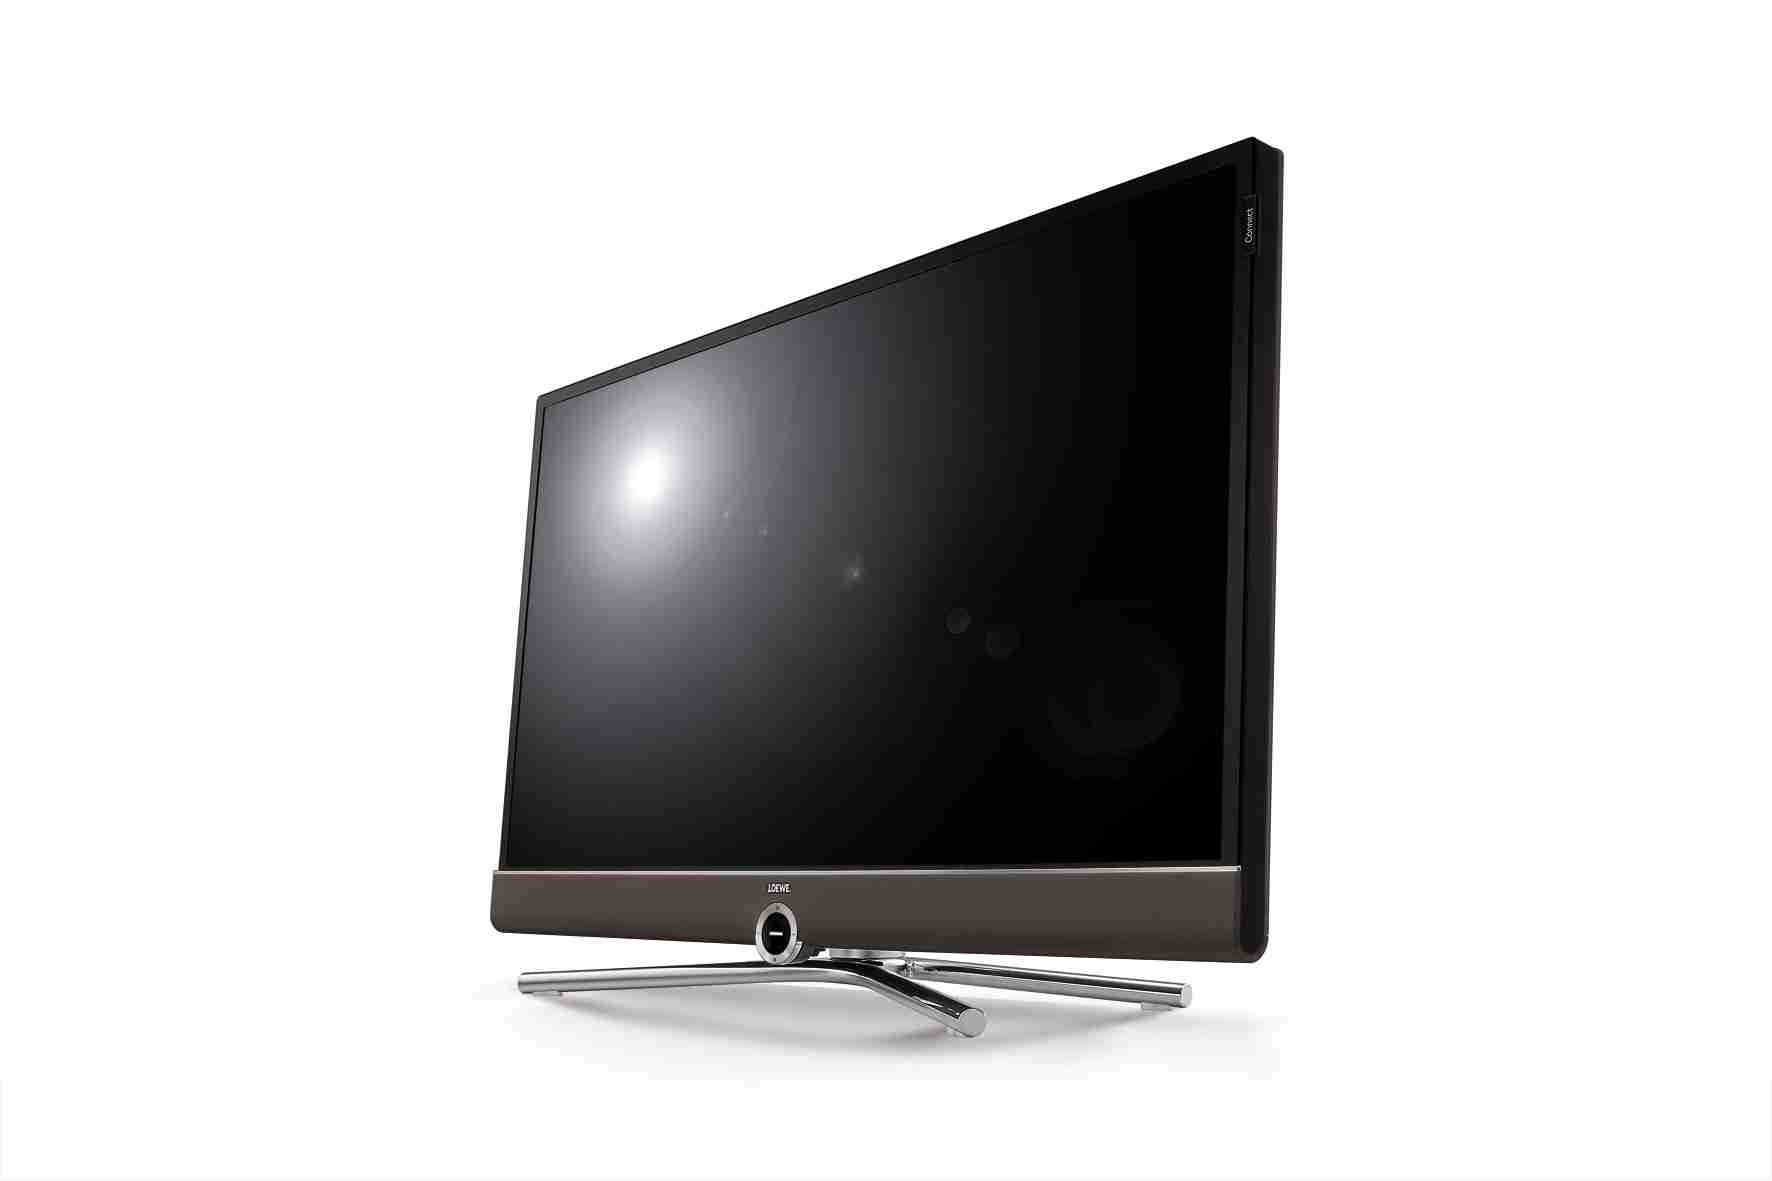 televisor loewe connect 32 full hd dr capuccino